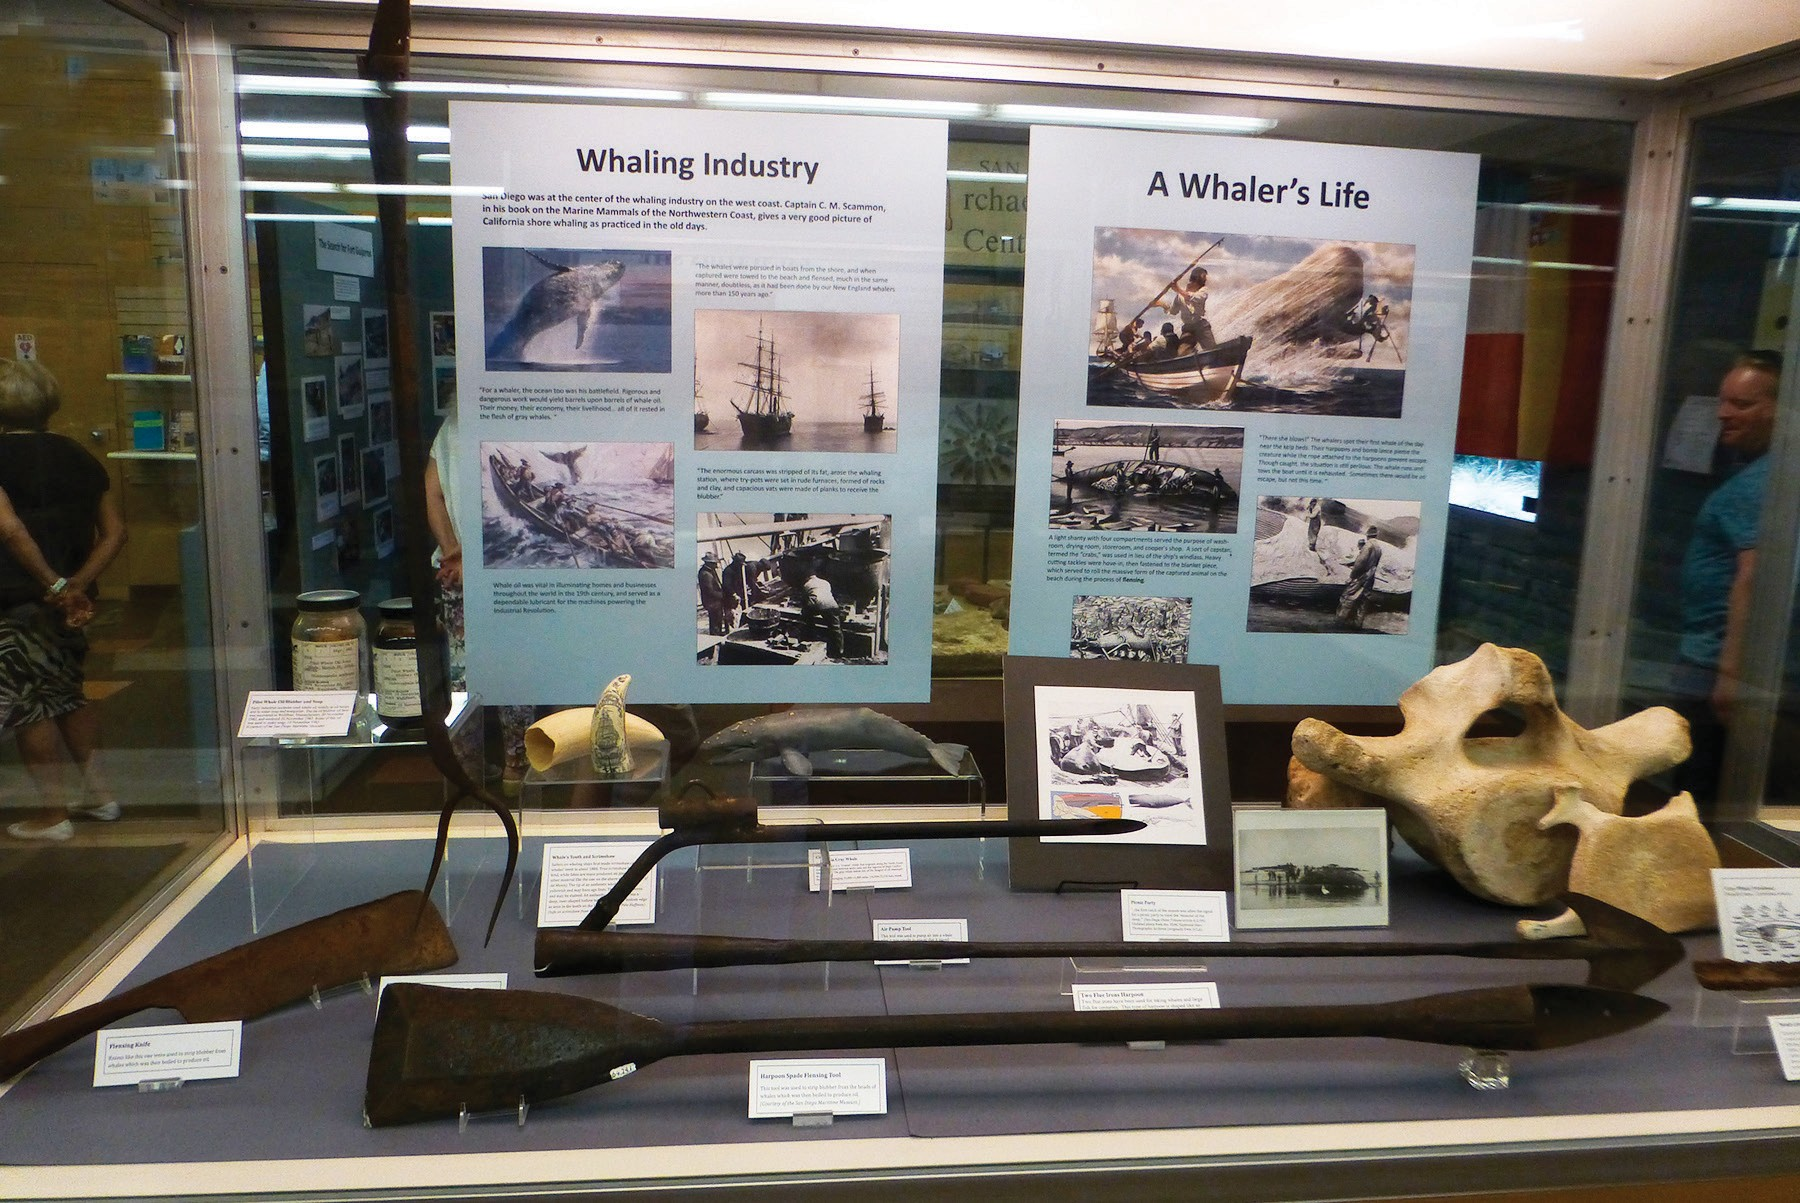 A case of artifacts from the whaling industry. San Diego supported a strong community of whalers in the heyday of that era.